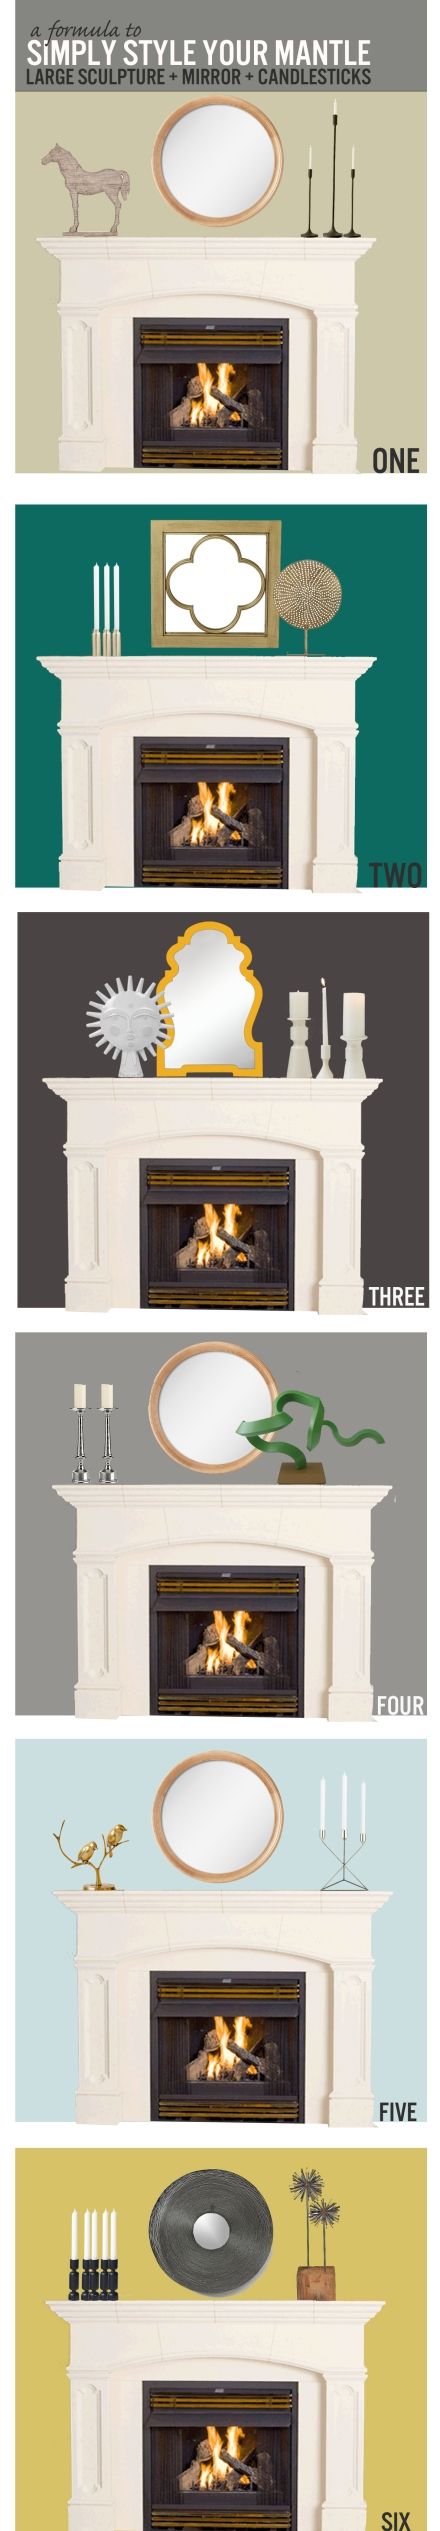 A Formula to Style Your Fireplace Mantle | www.theanatomyofdesign.com